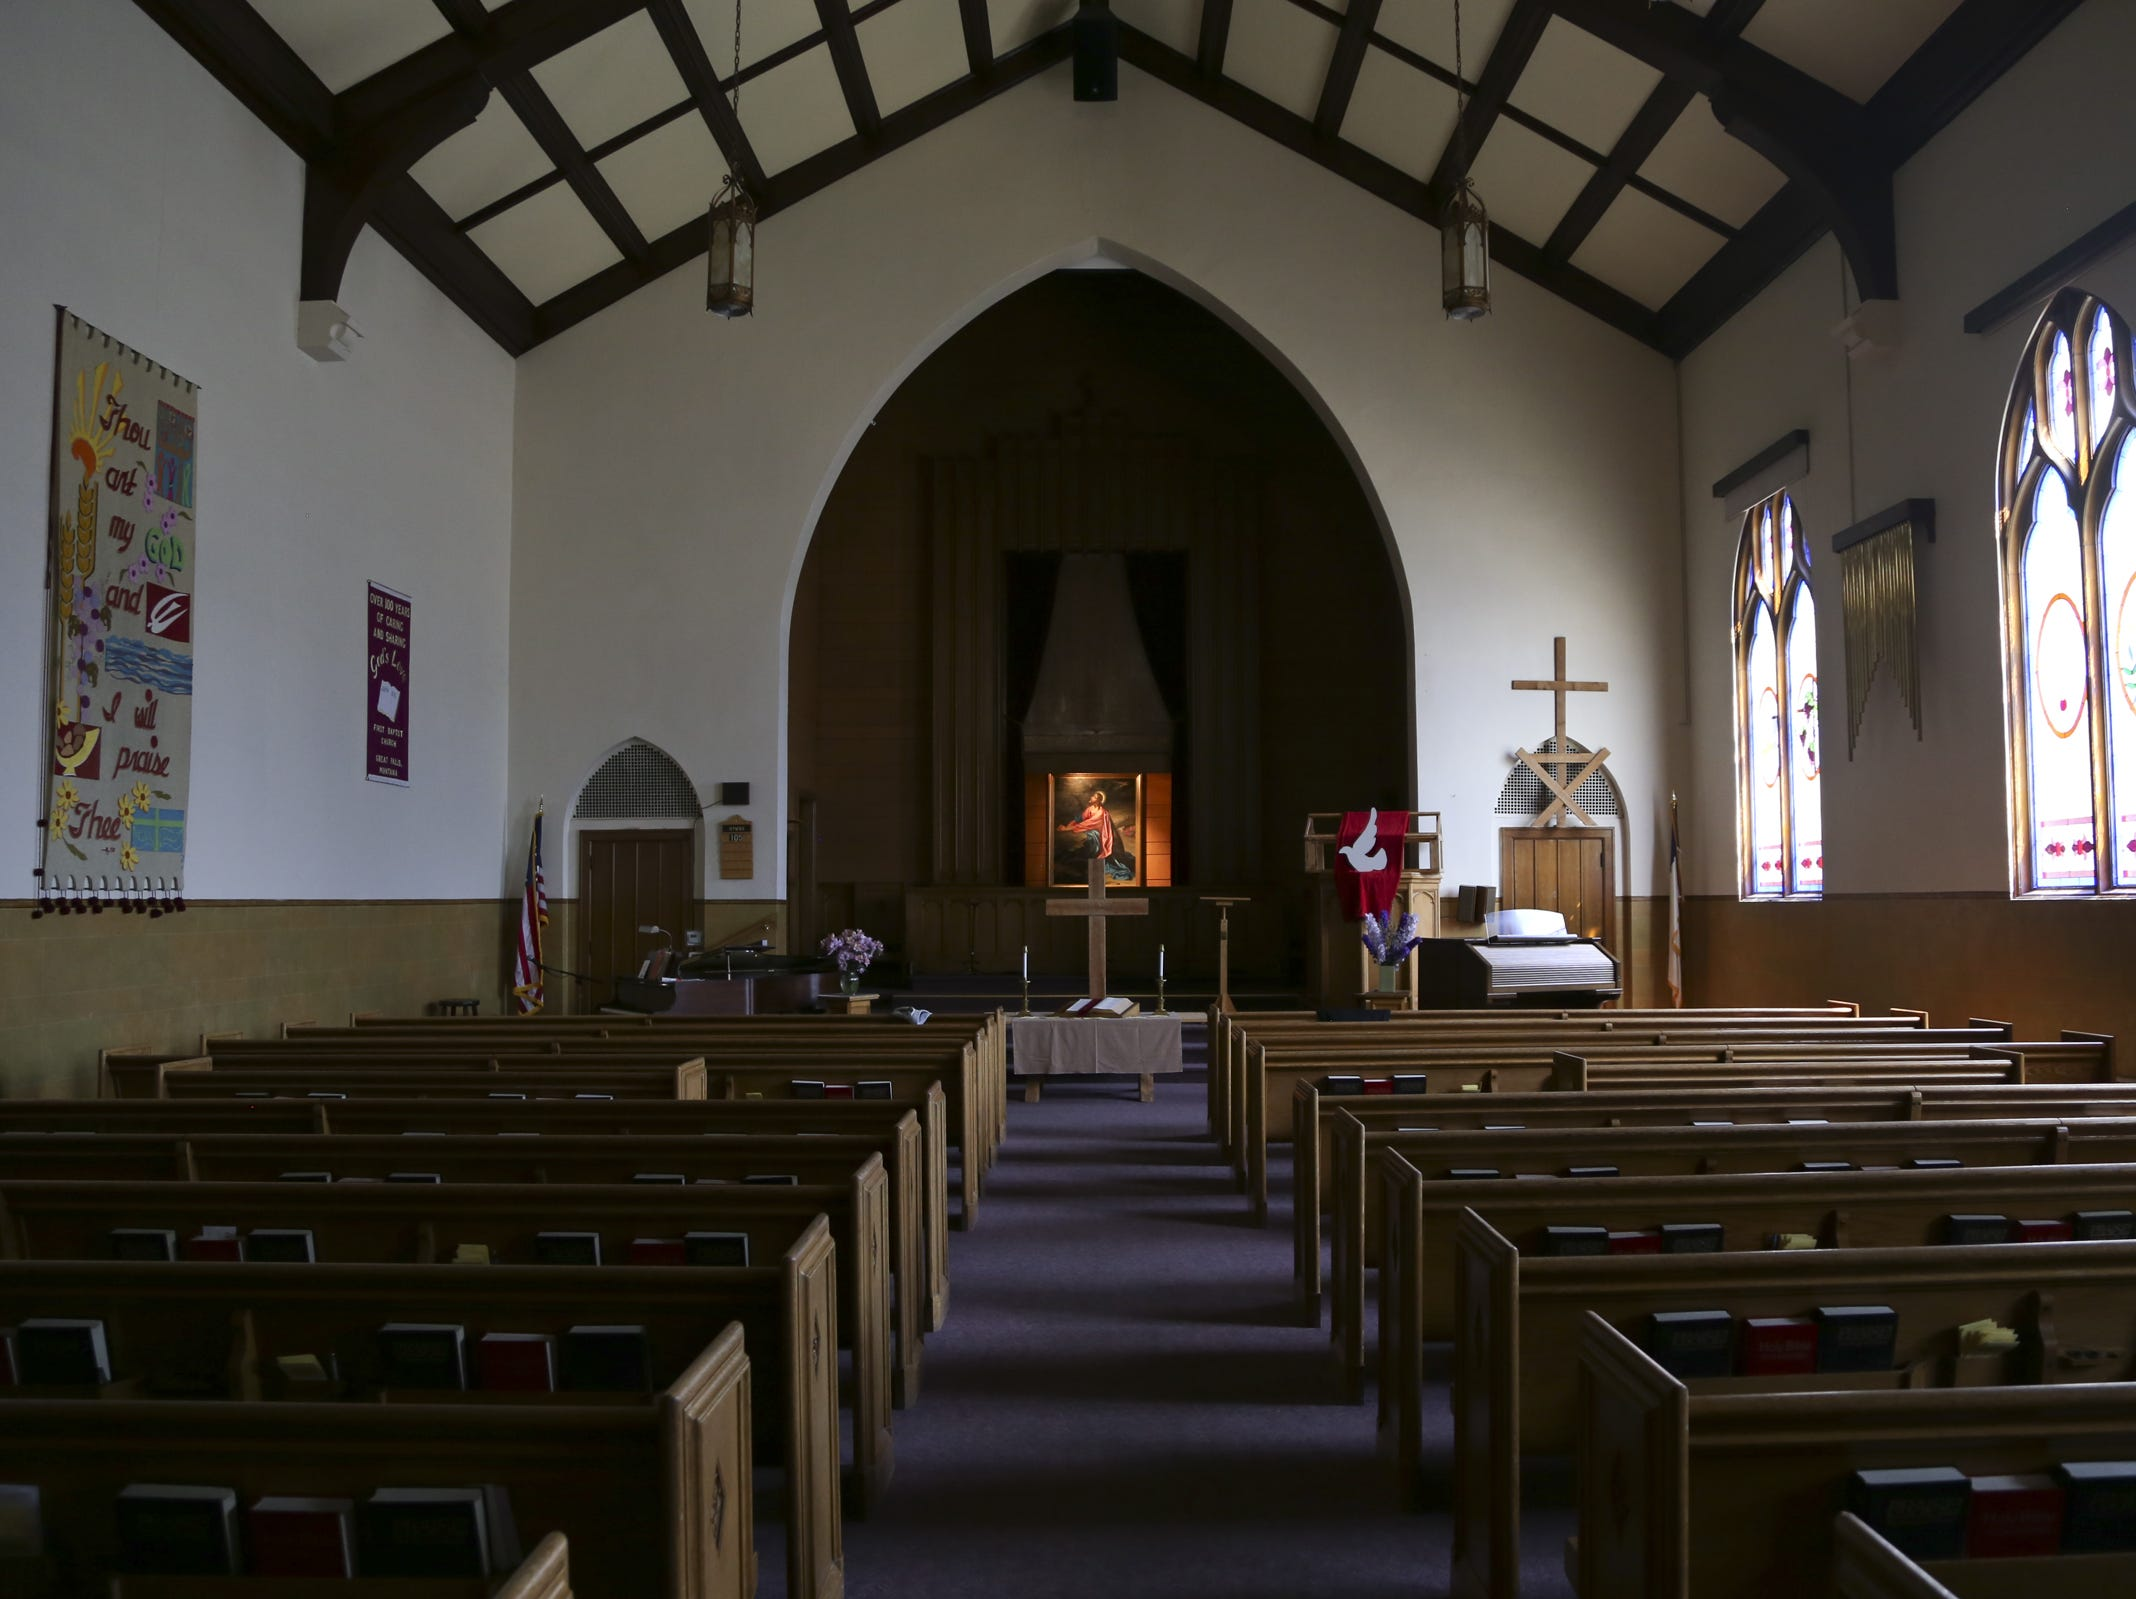 The First Baptist Church in Great Falls celebrated its 125th birthday in 2014.